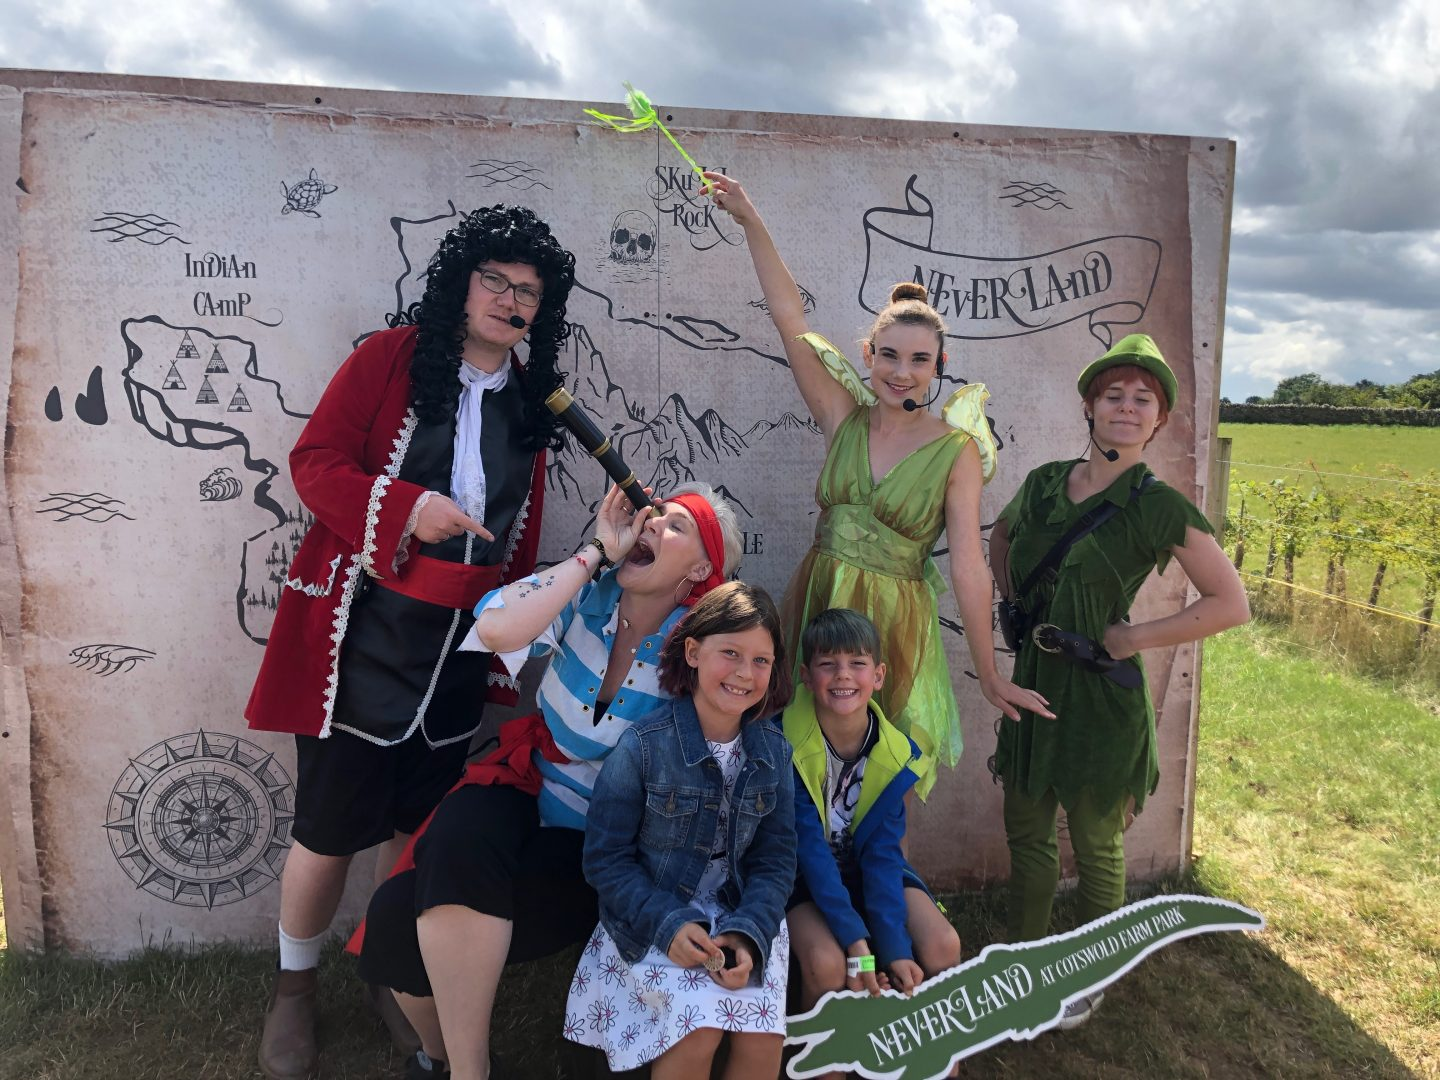 A photo of my son and daughter with the cast of the maize maze pantomime style show at the Cotswold Farm Park over the summer.